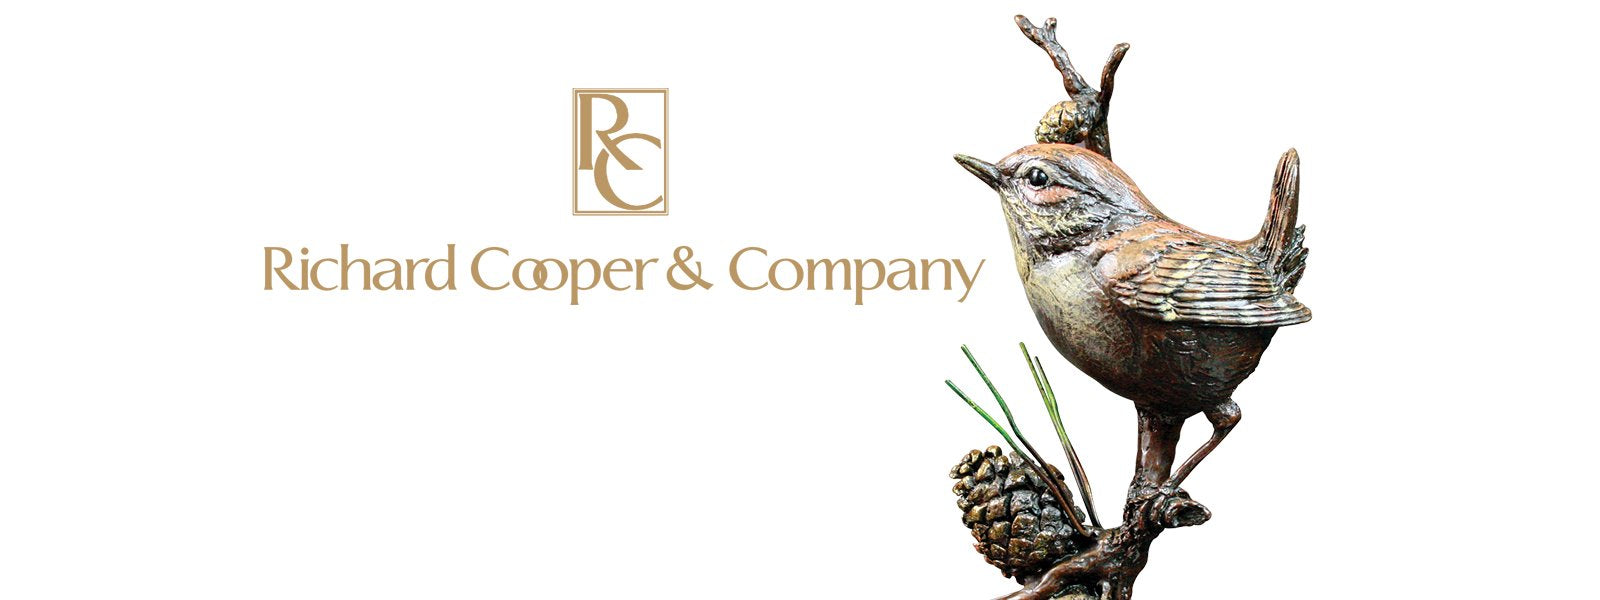 RICHARD COOPER ART IN BRONZE SCULPTURES